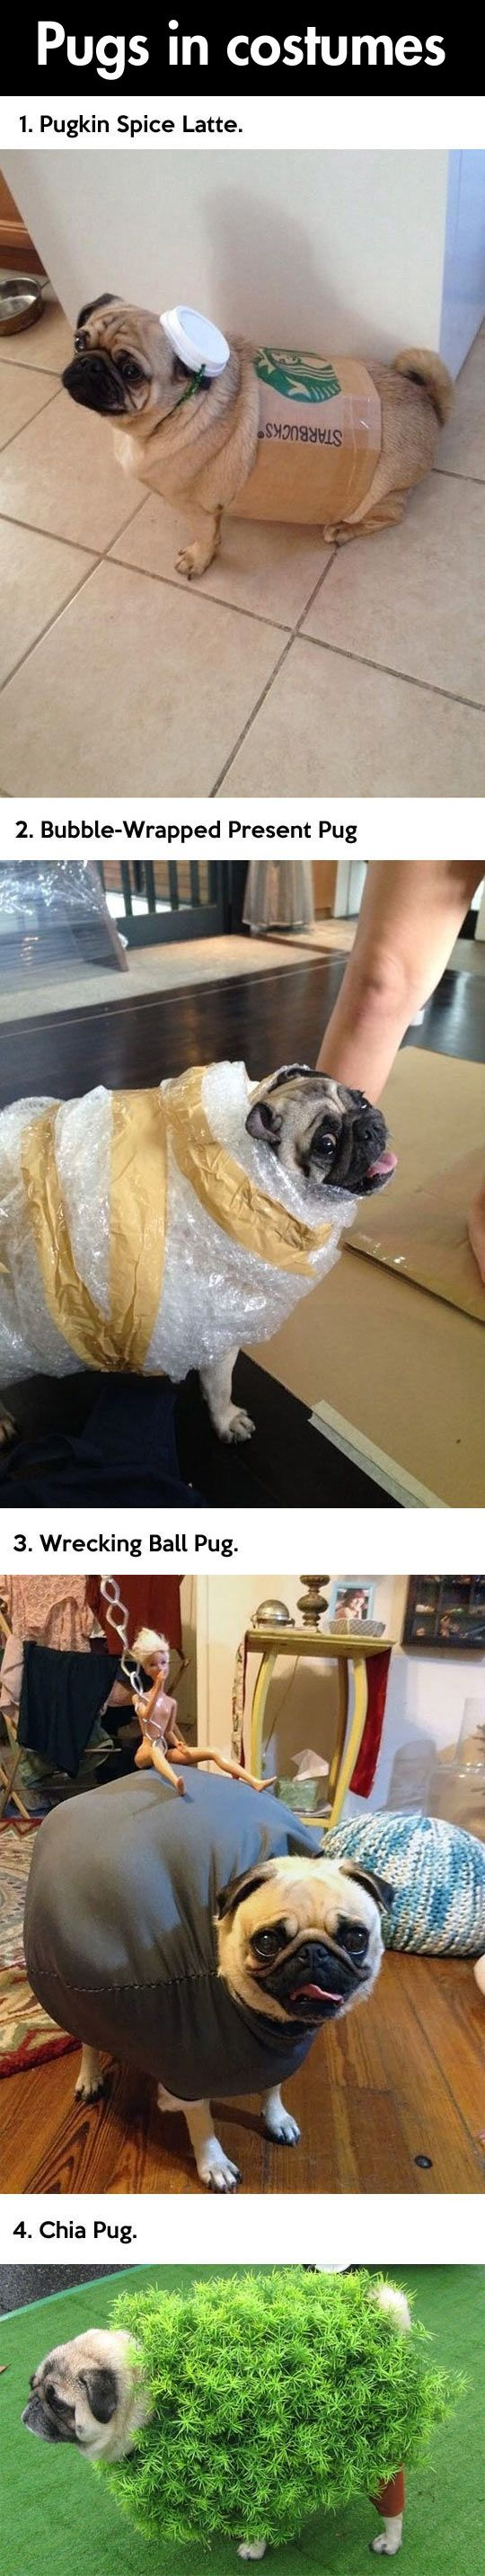 Pugs can really rock a costume…